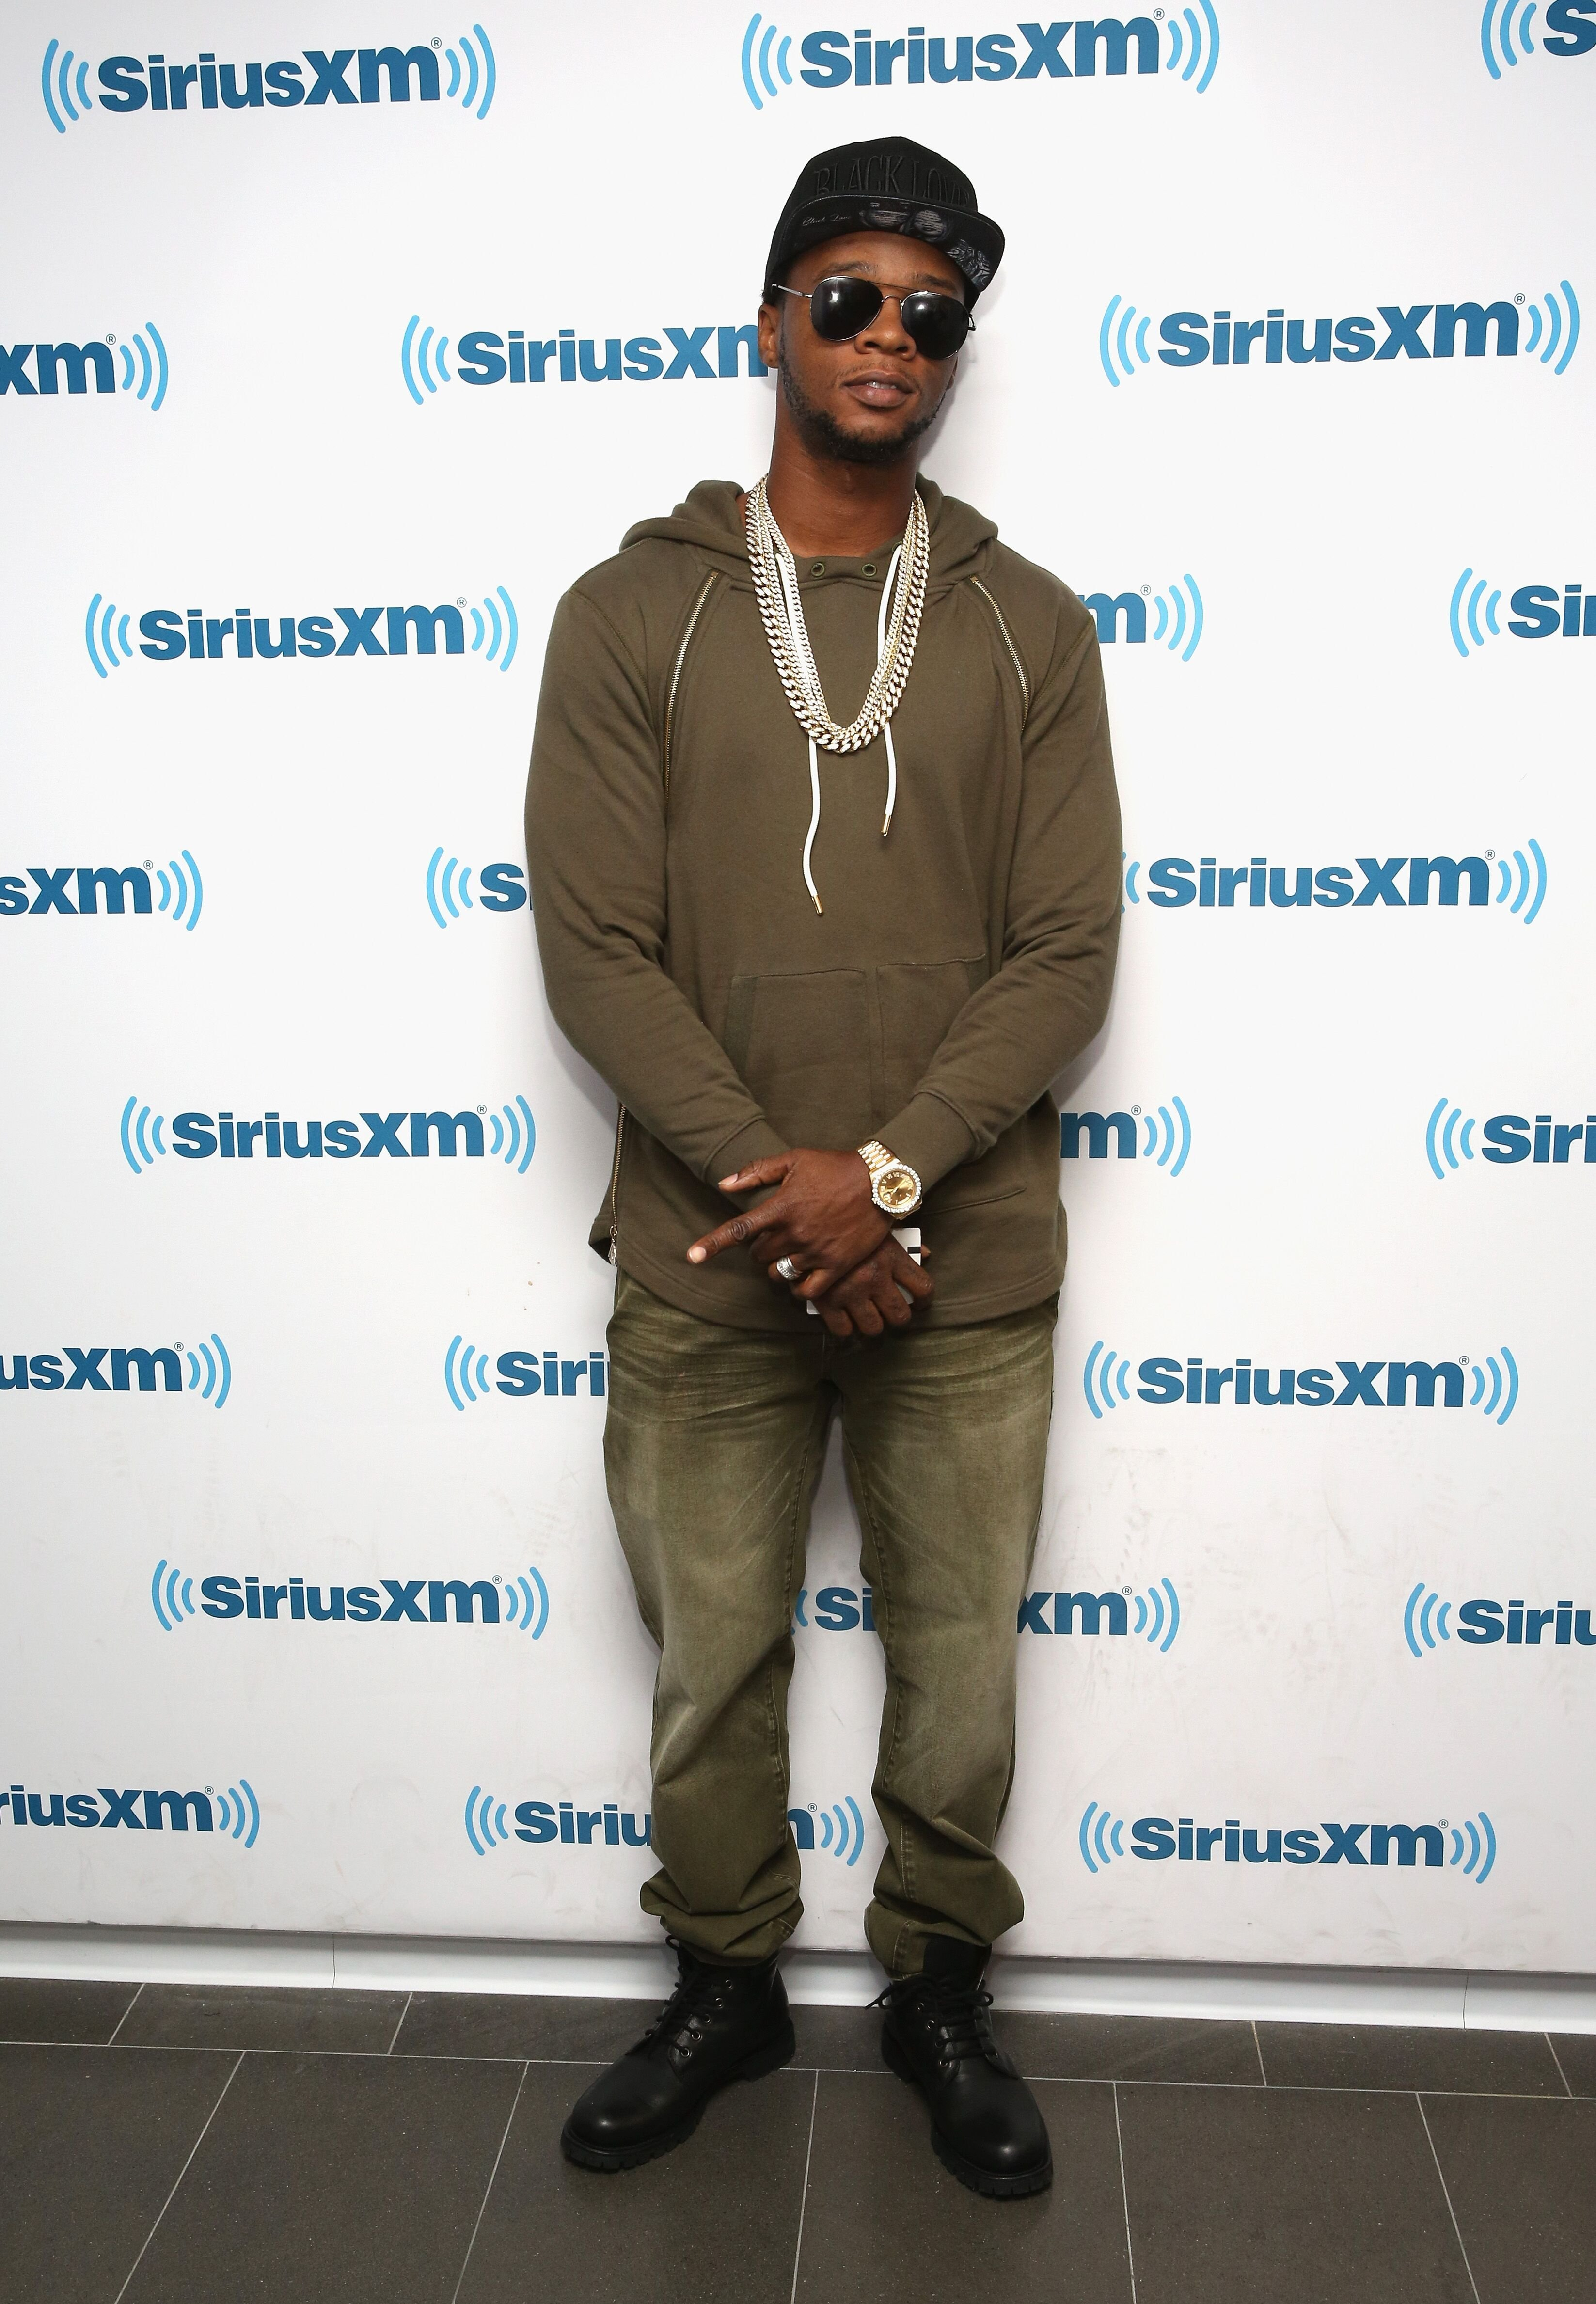 Shamele 'Papoose' Mackie visits at SiriusXM Studio | Photo: Getty Images